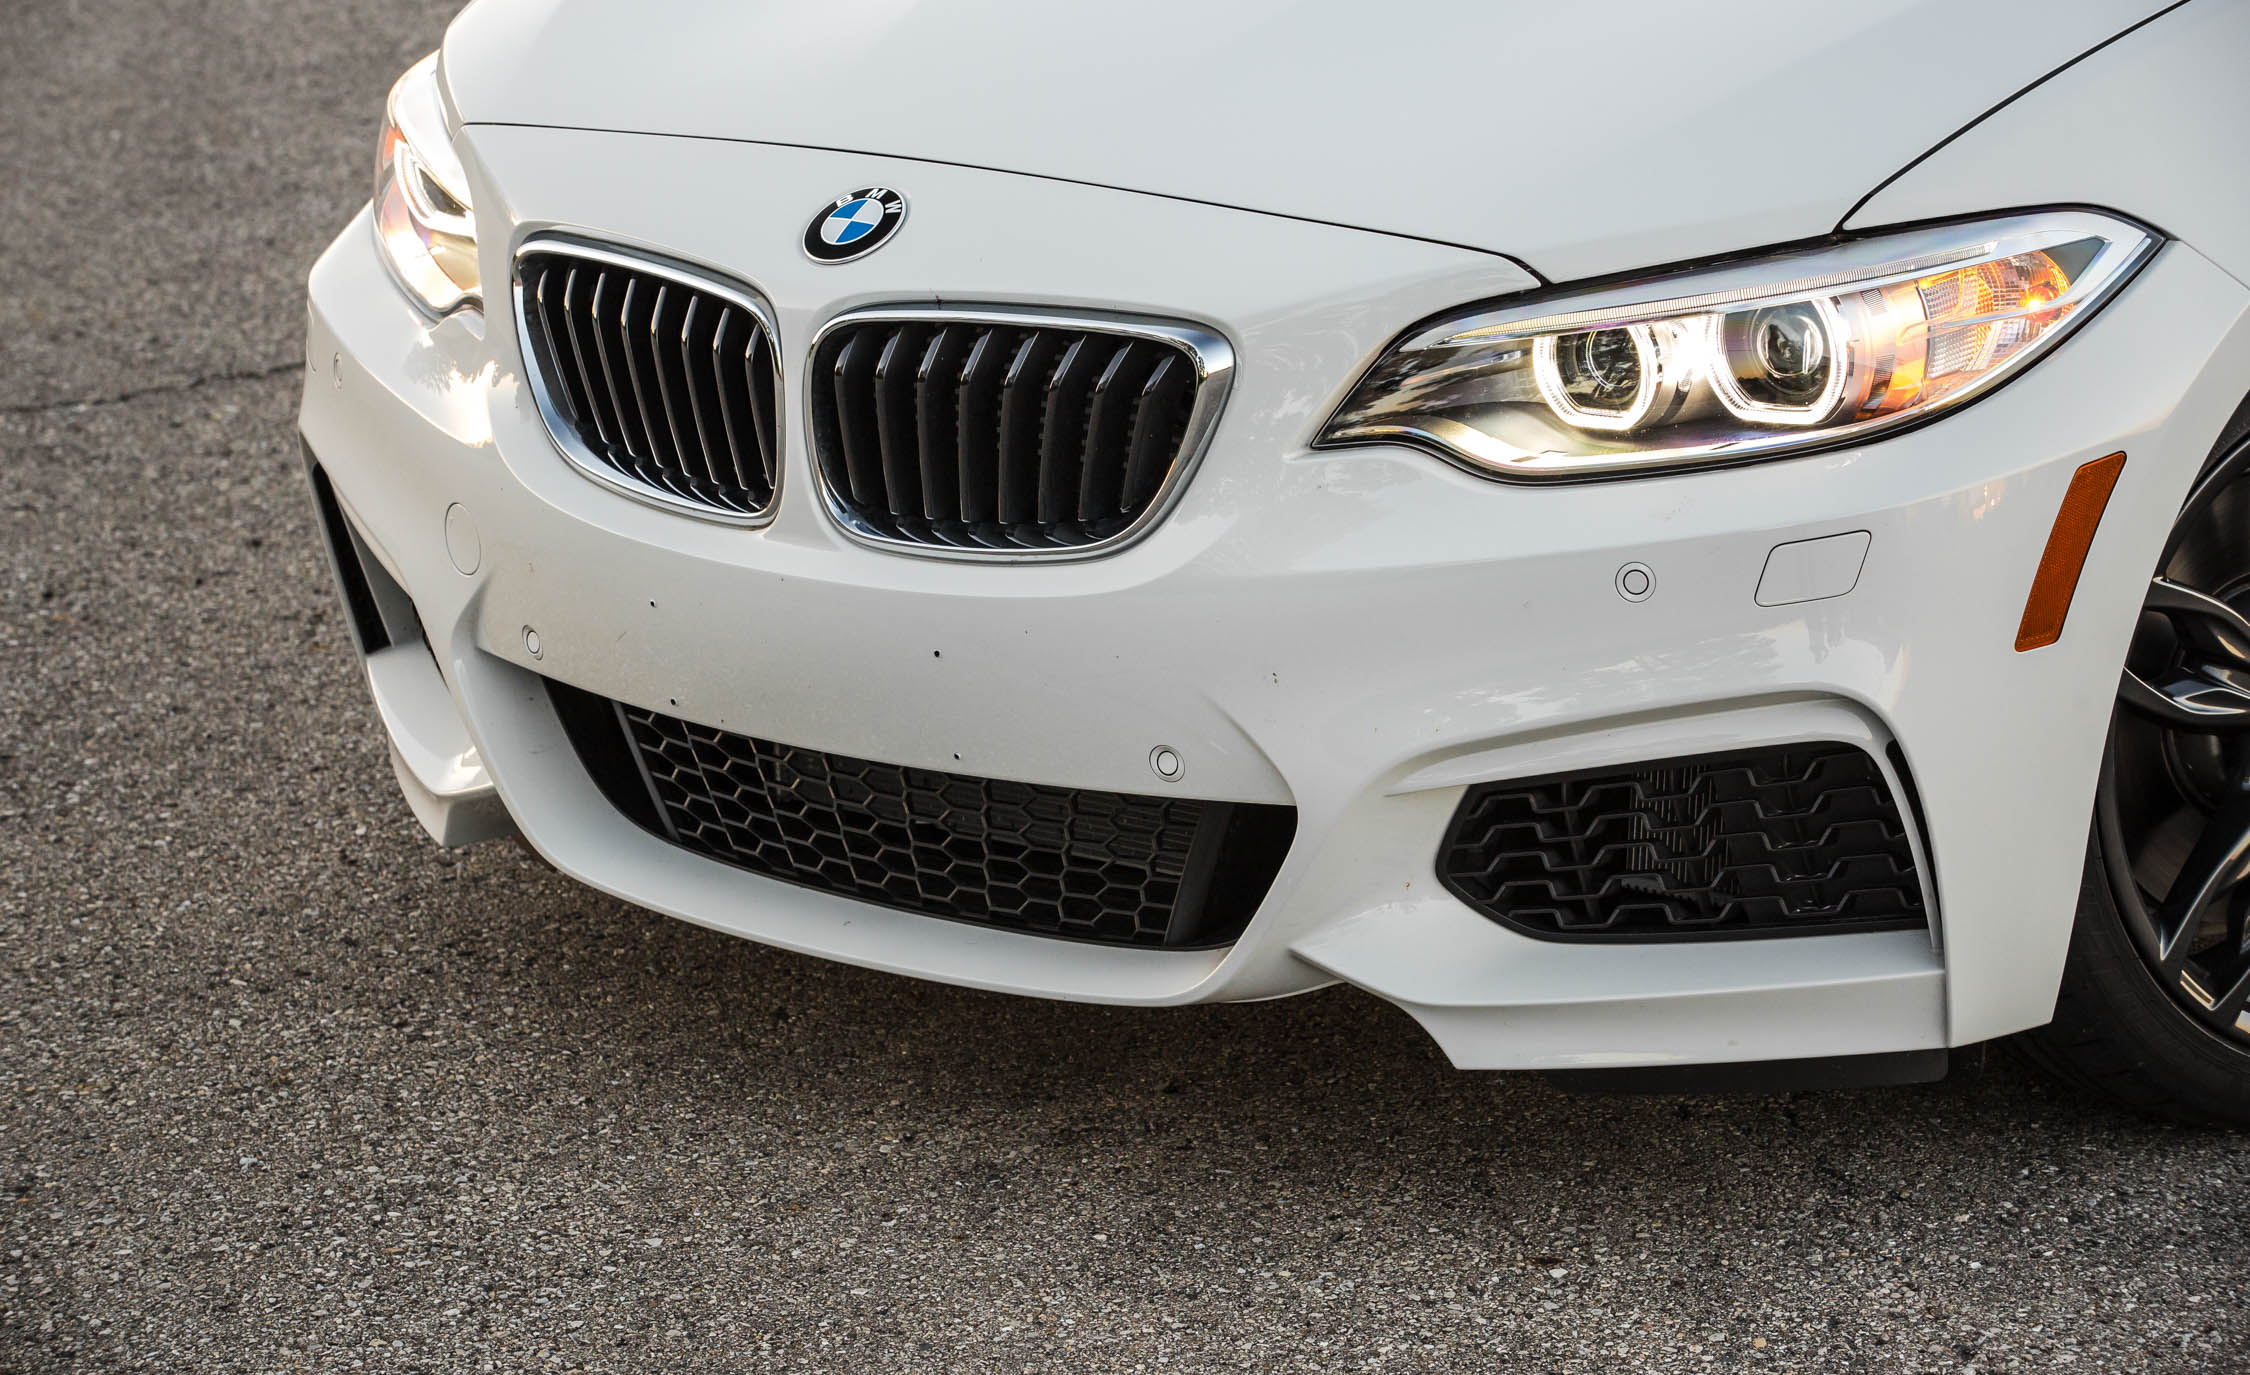 2017 BMW M240i Coupe Automatic Exterior View Front Bumper And Grille (Photo 32 of 36)